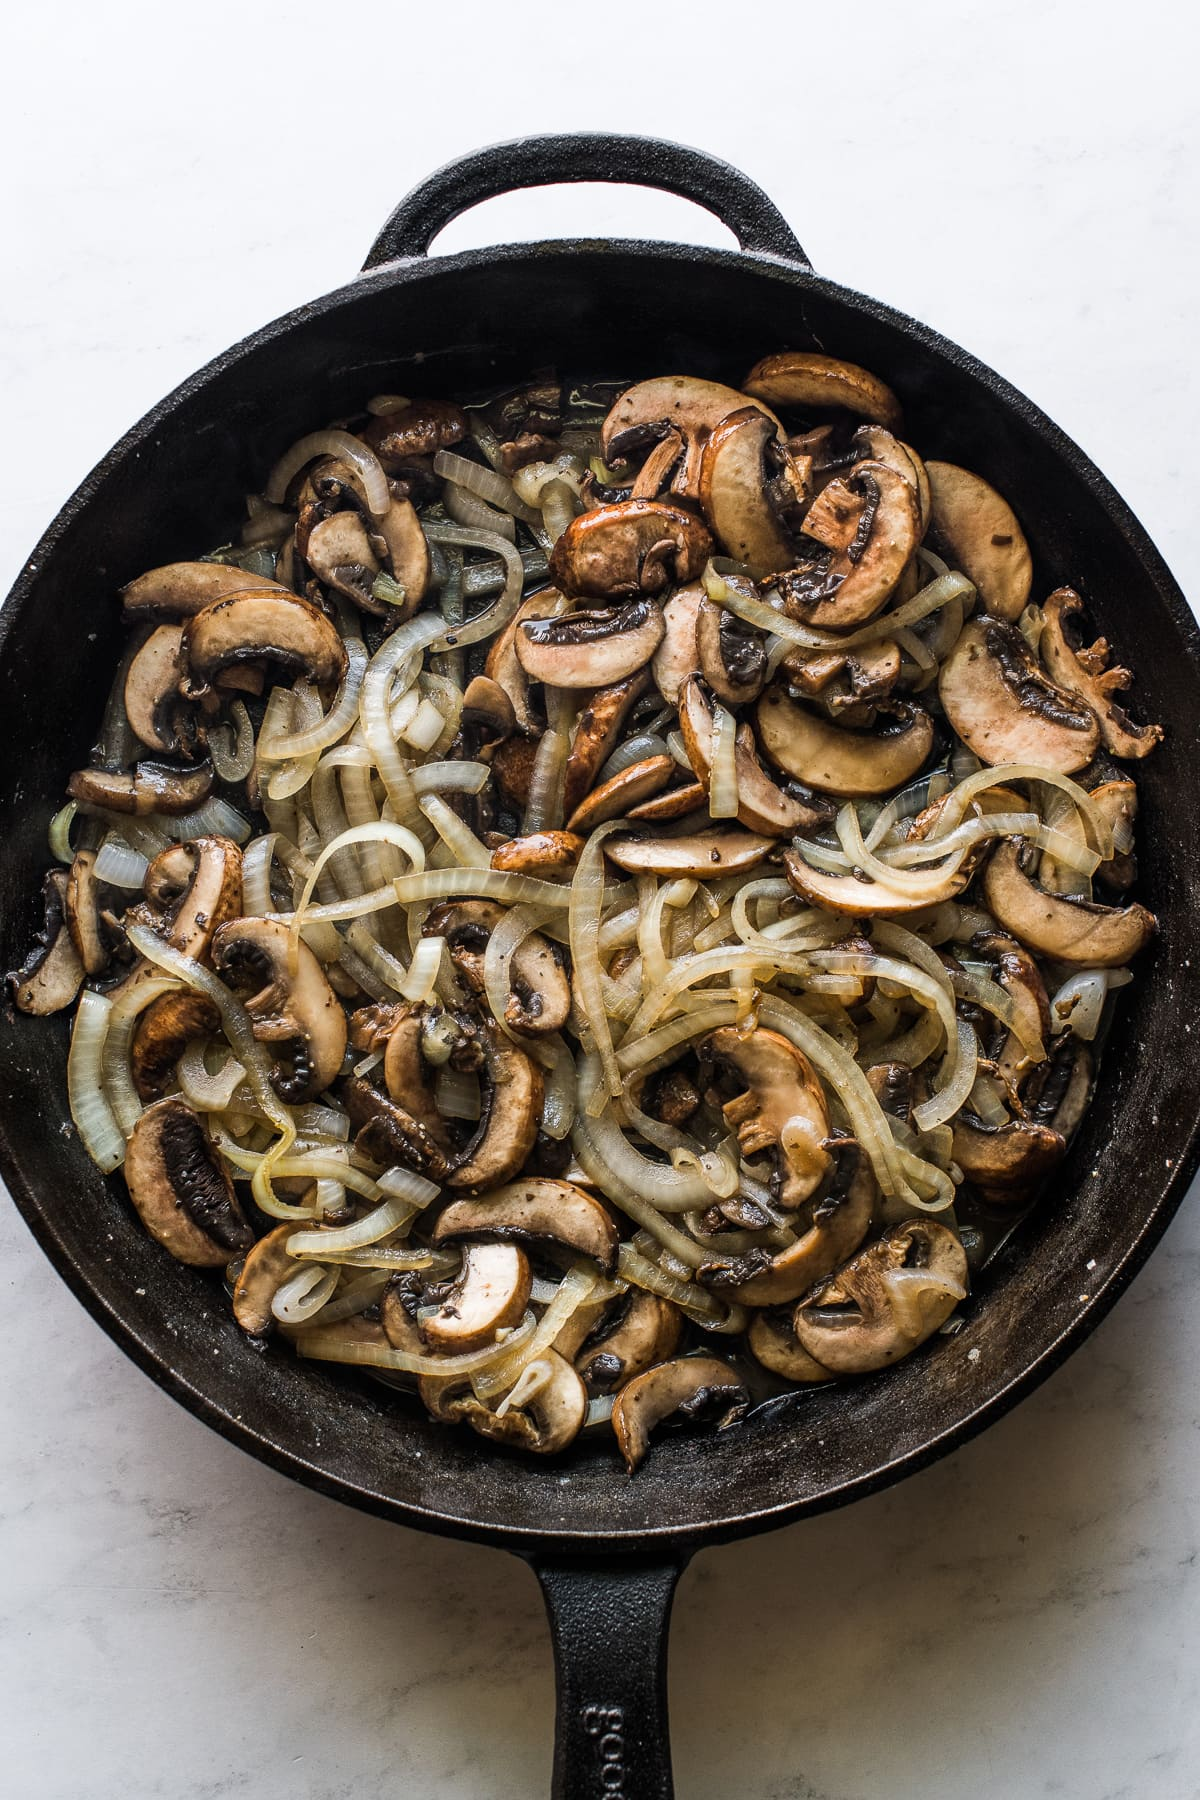 Sauteed onions and mushrooms for green bean casserole.